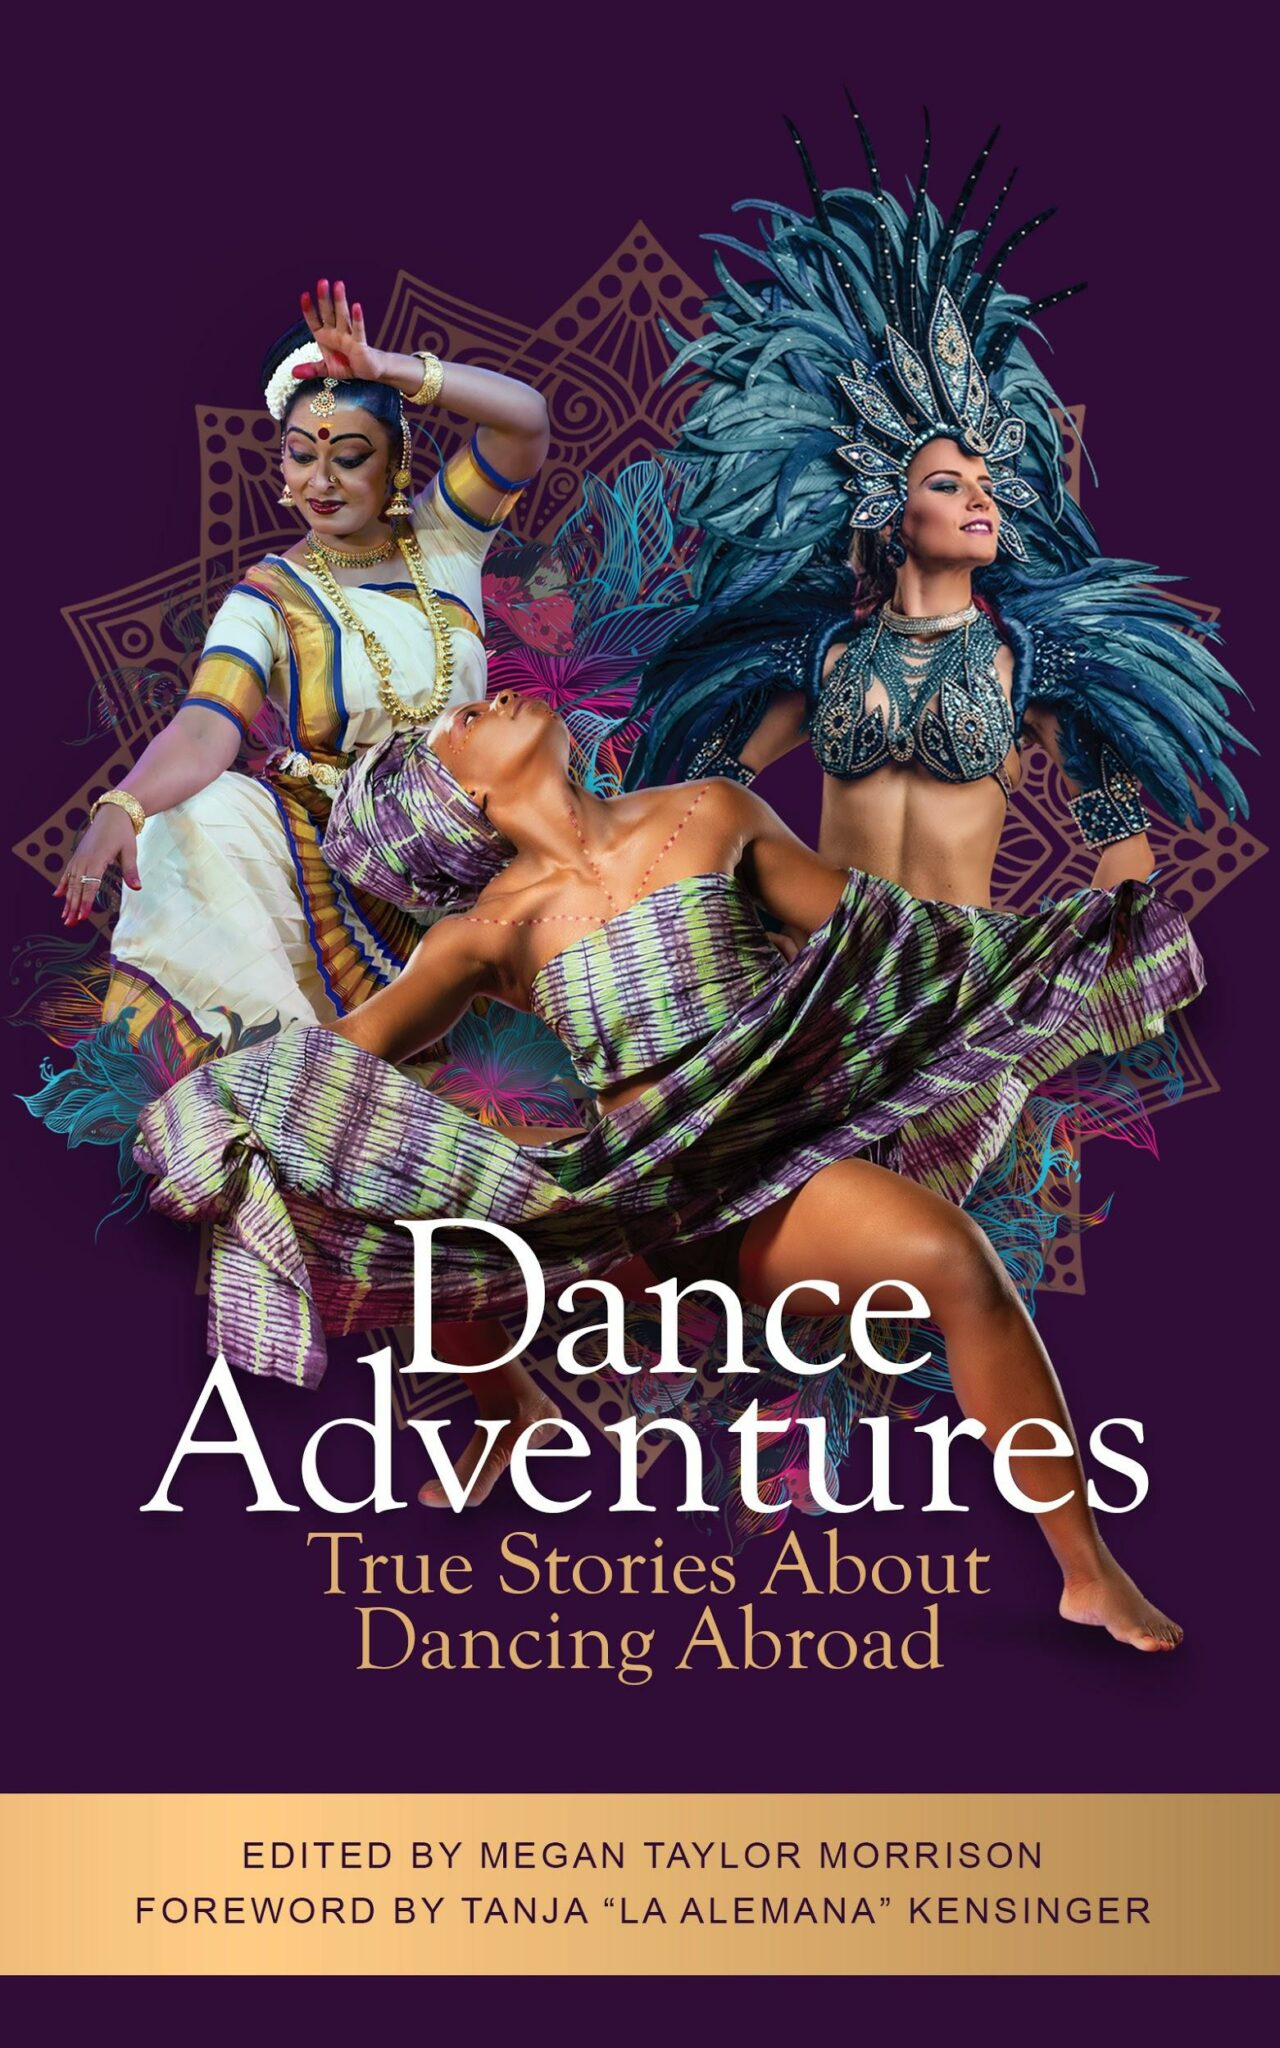 Dance adventures dance travel book cover